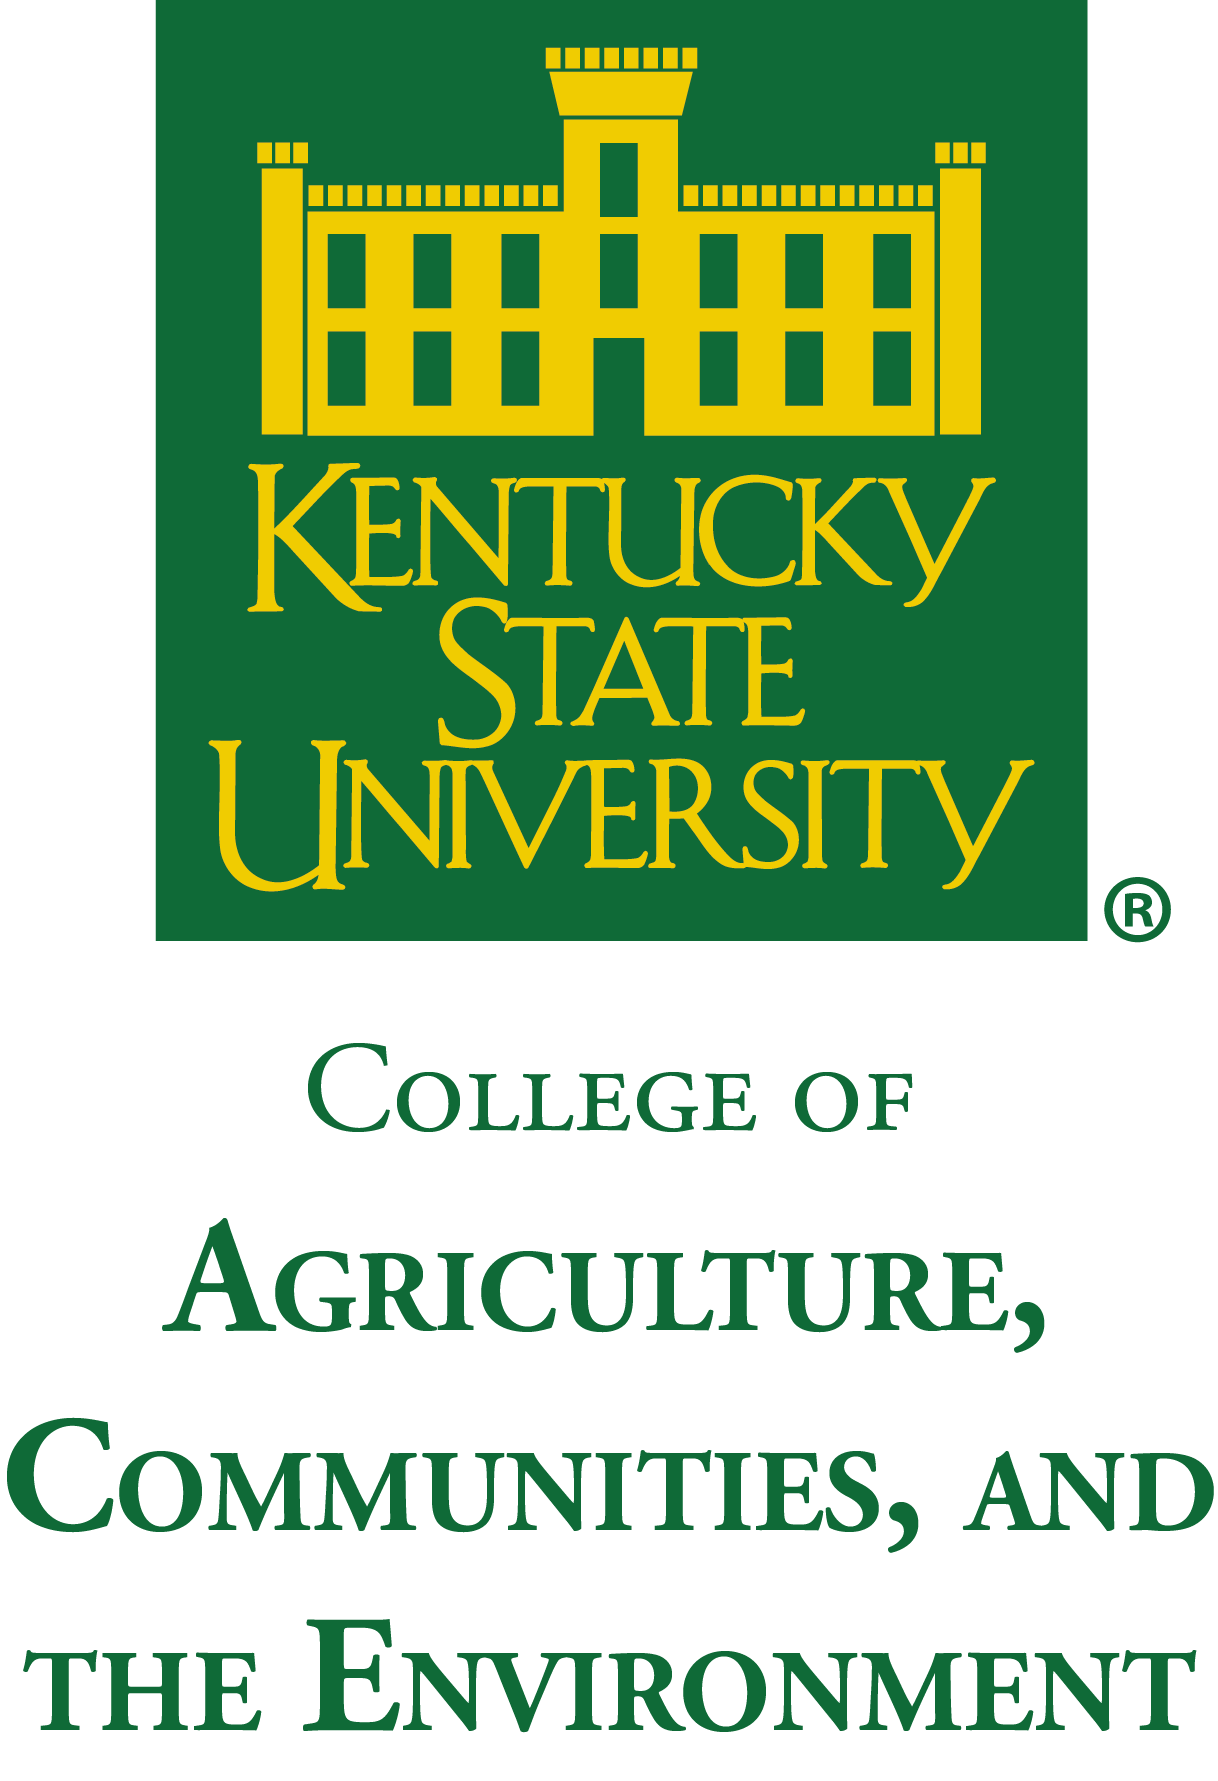 KSU logo - updated